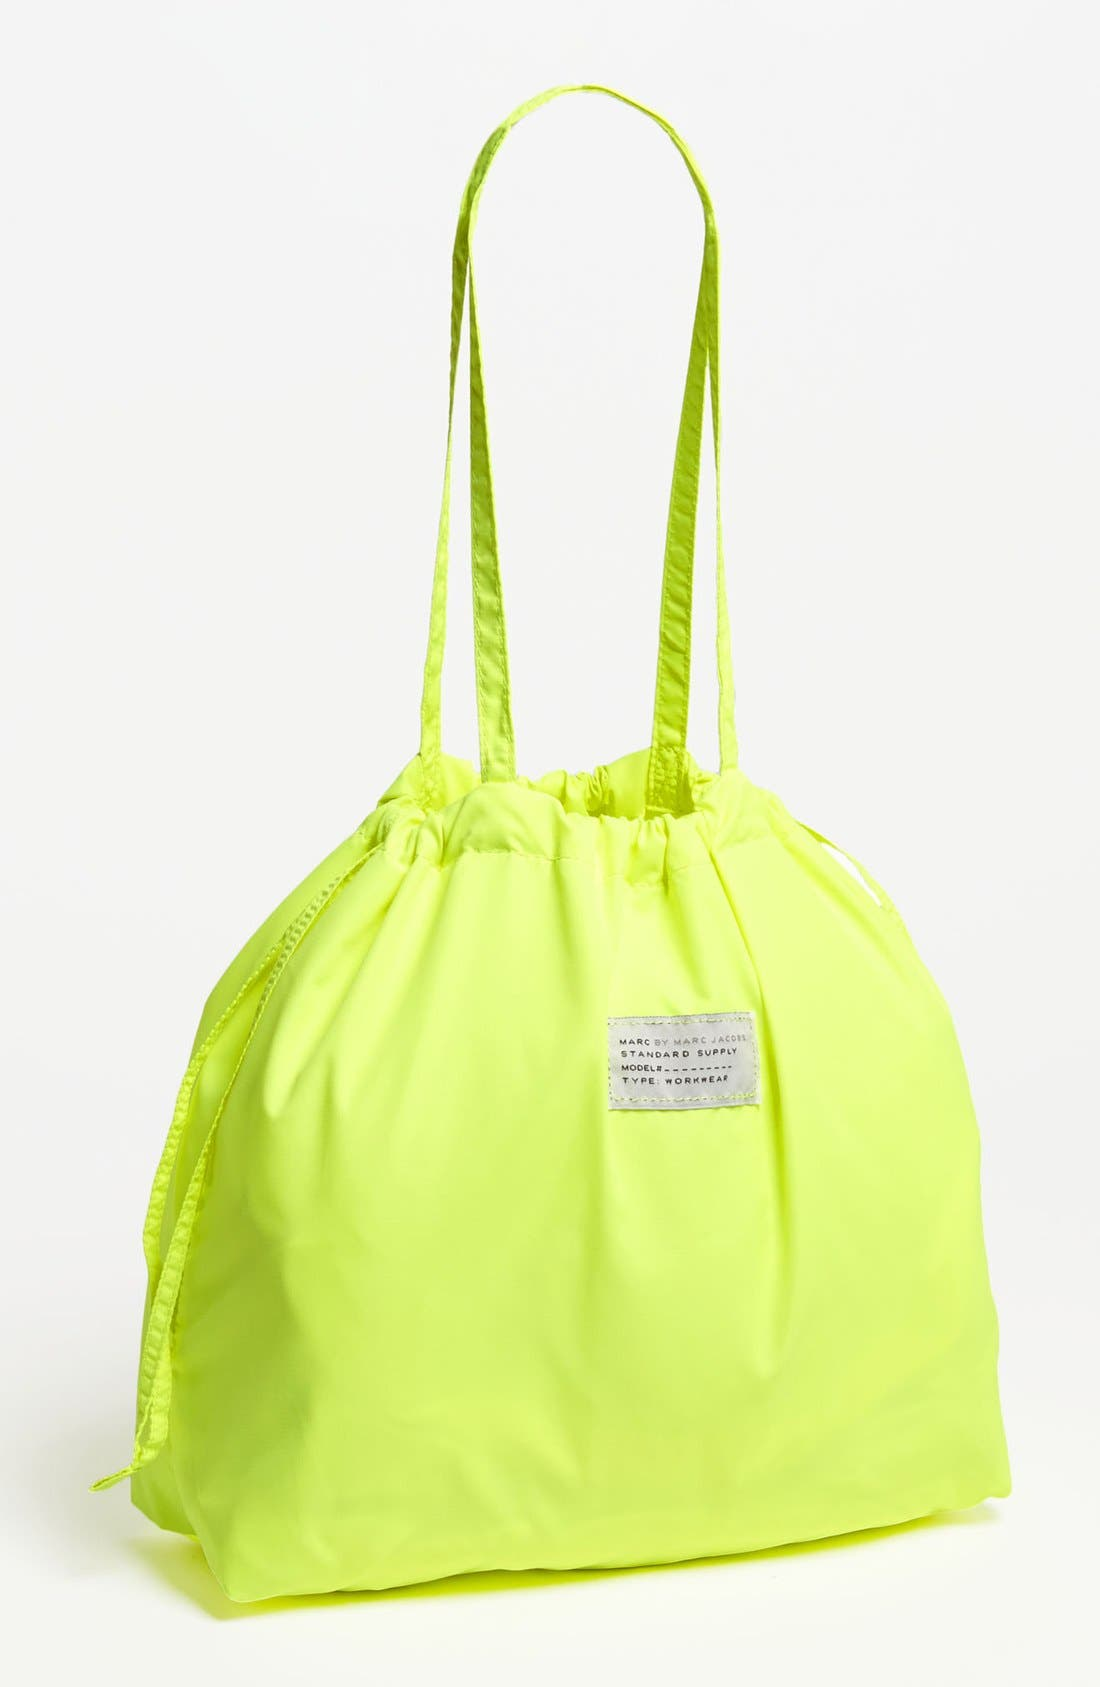 Main Image - MARC BY MARC JACOBS 'Spot - Solid' Drawstring Tote